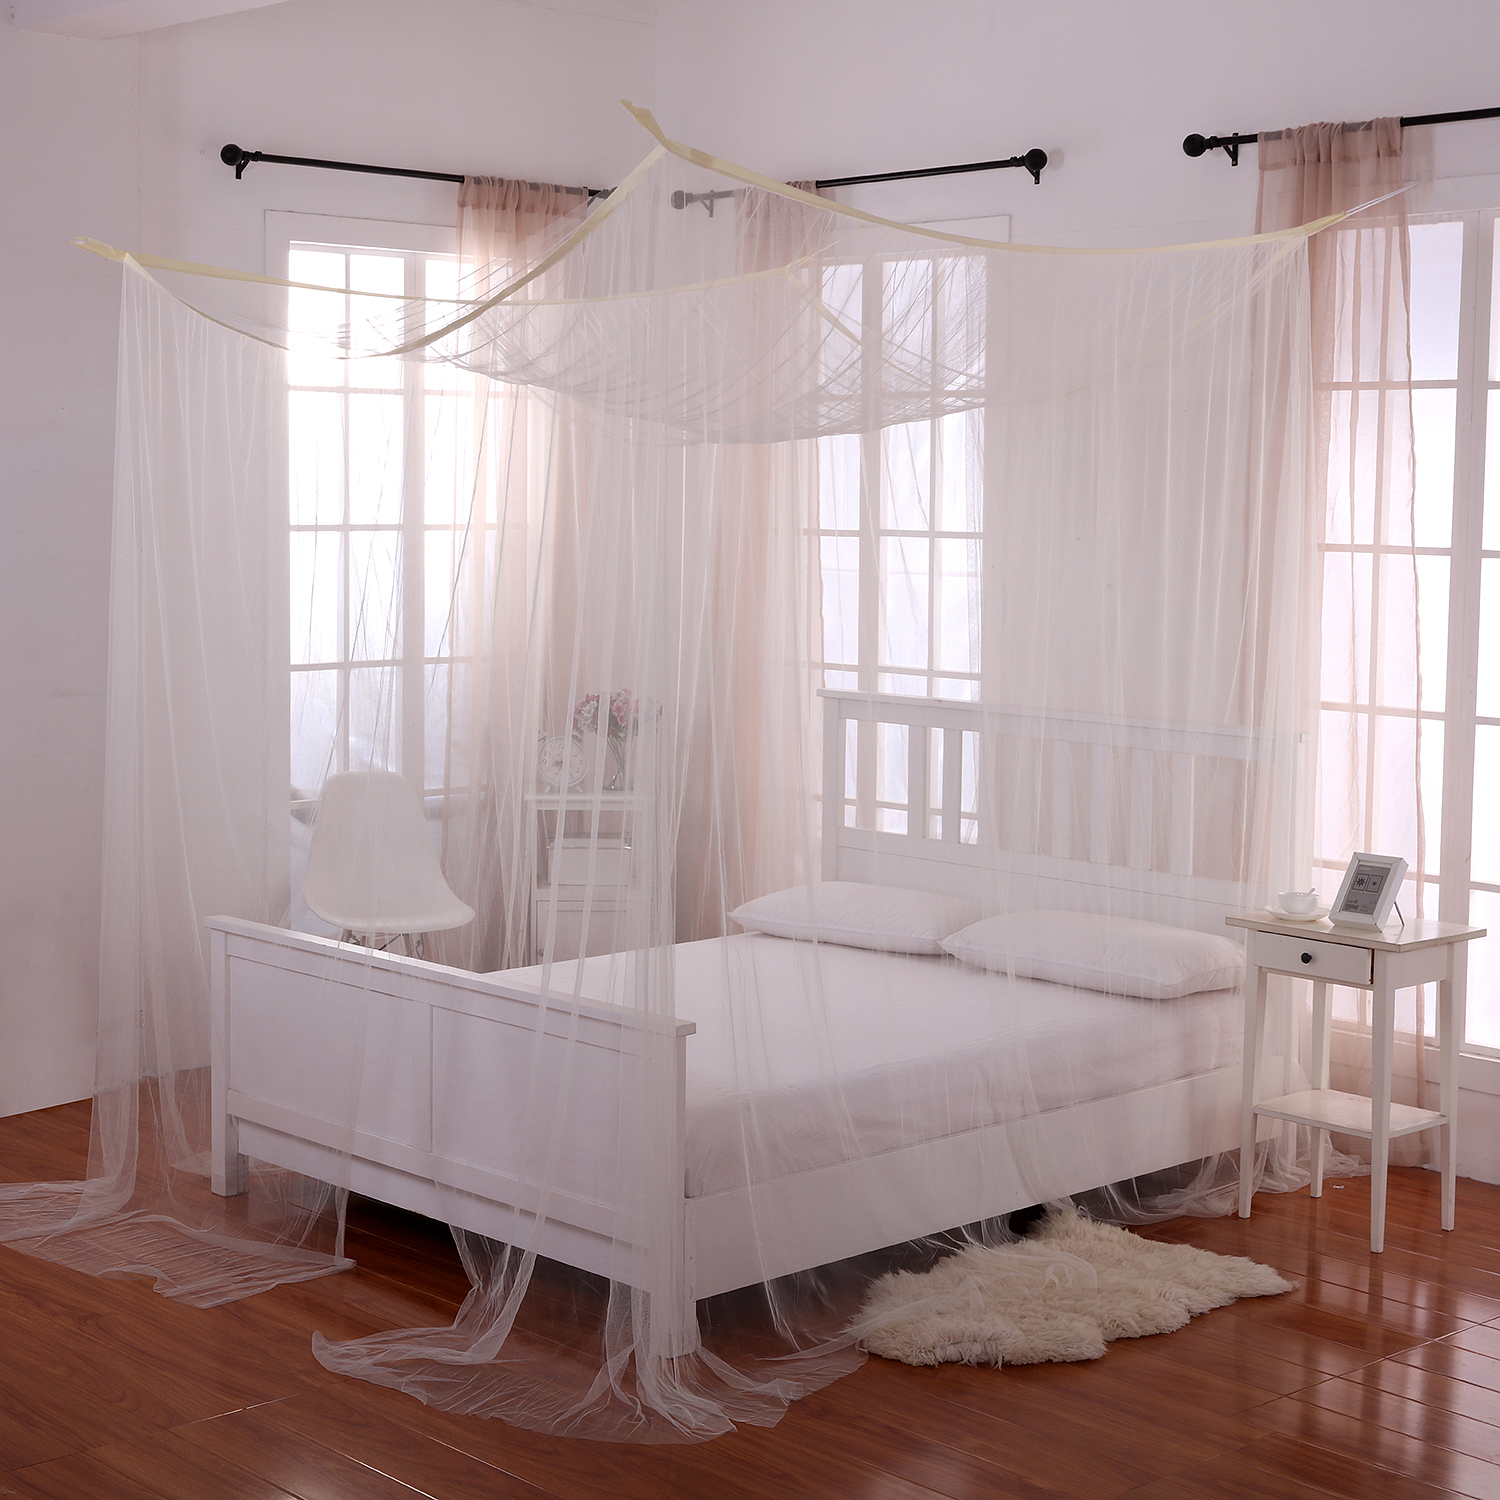 Casablanca Palace 4-Post Bed Sheer Panel Canopy